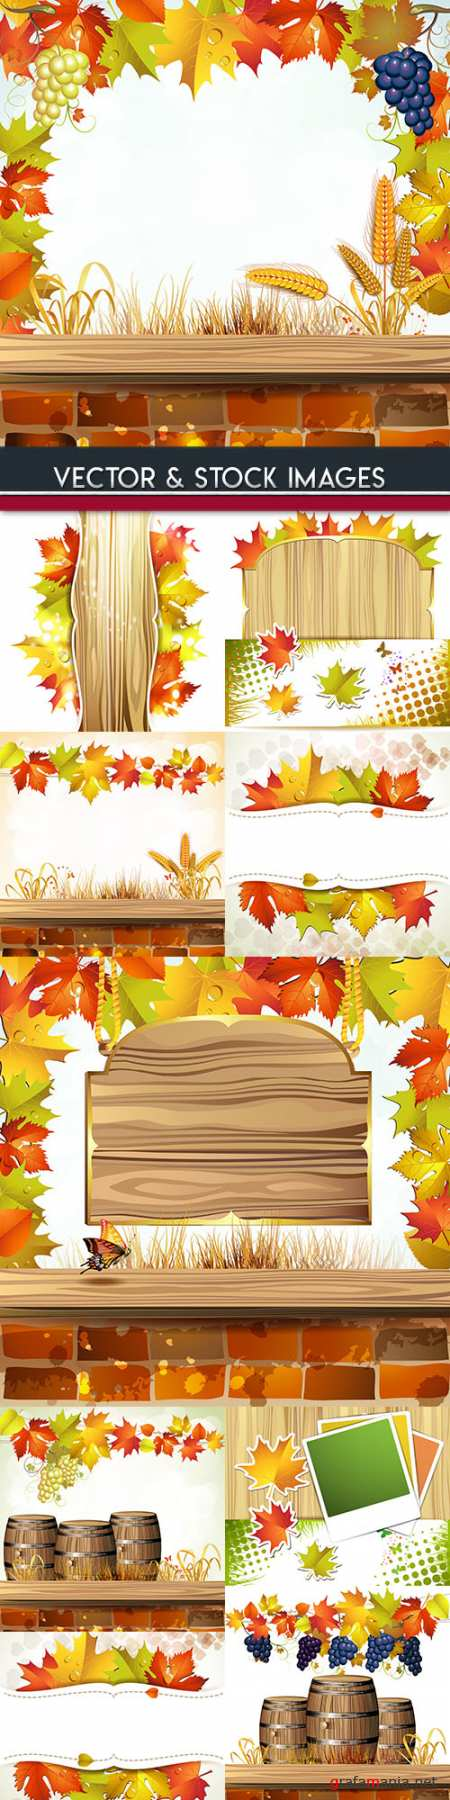 Autumn foliage and grape bunches illustration